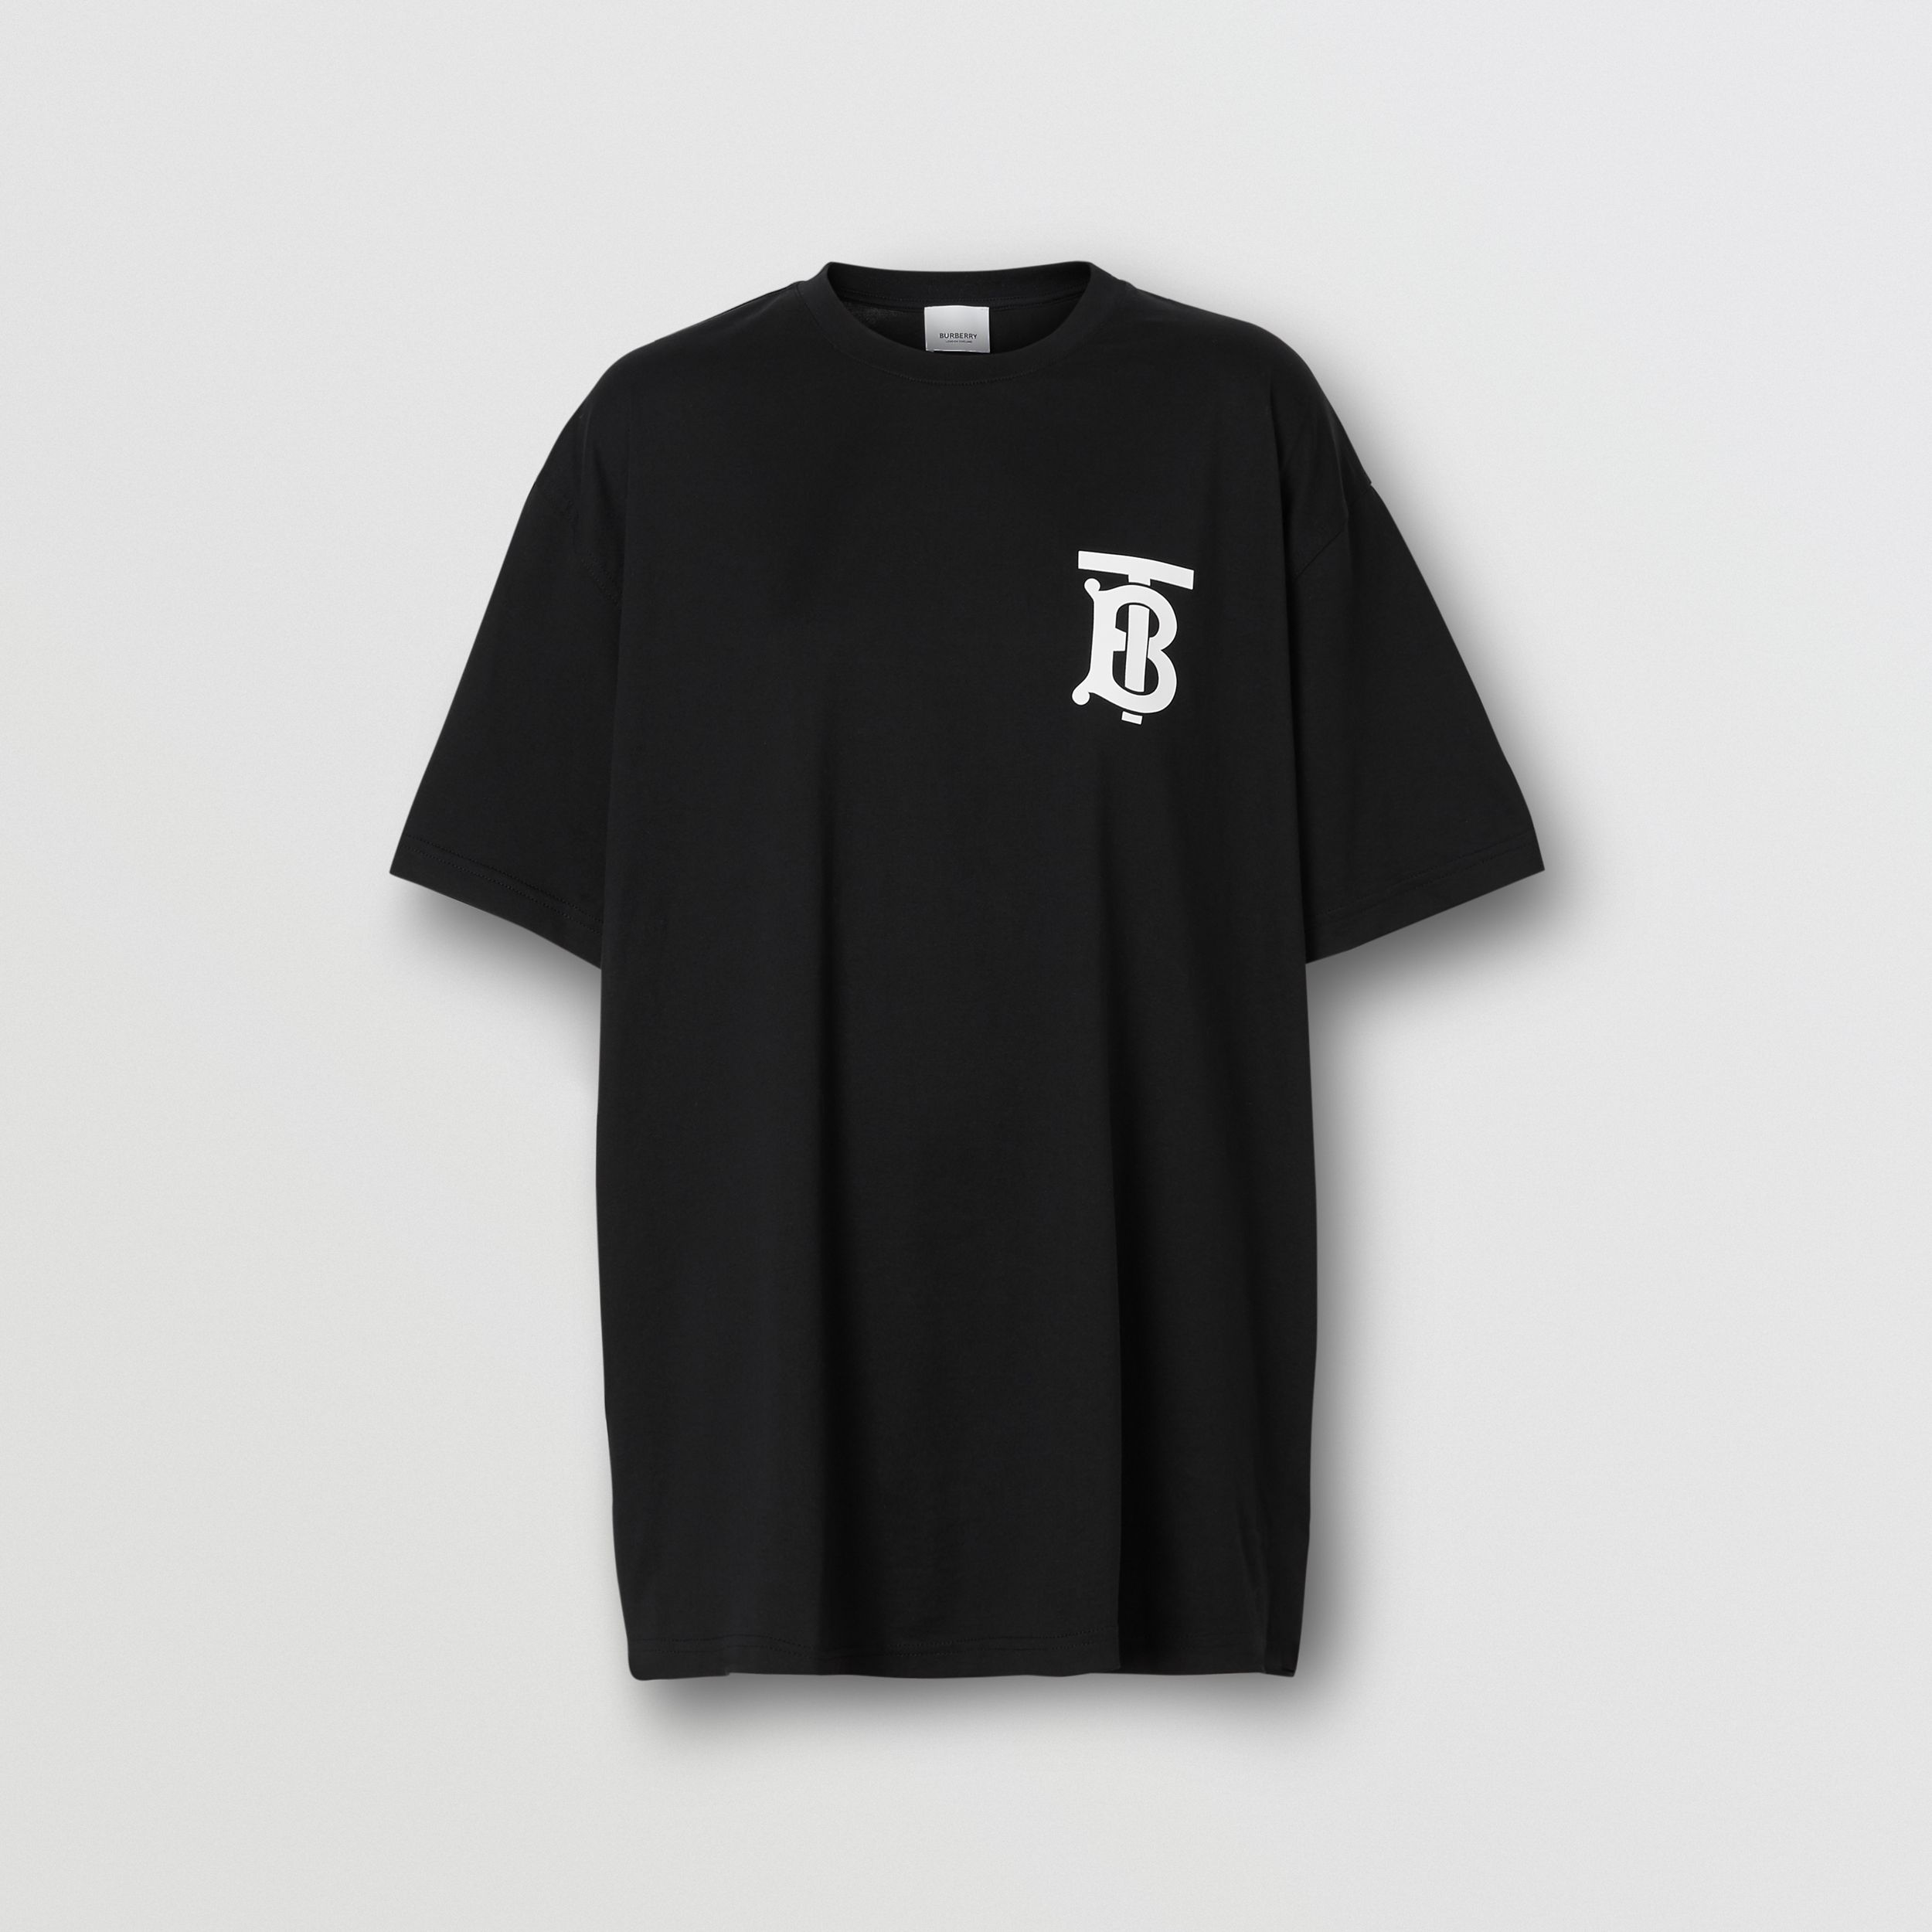 Monogram Motif Cotton Oversized T-shirt in Black - Women | Burberry - 4